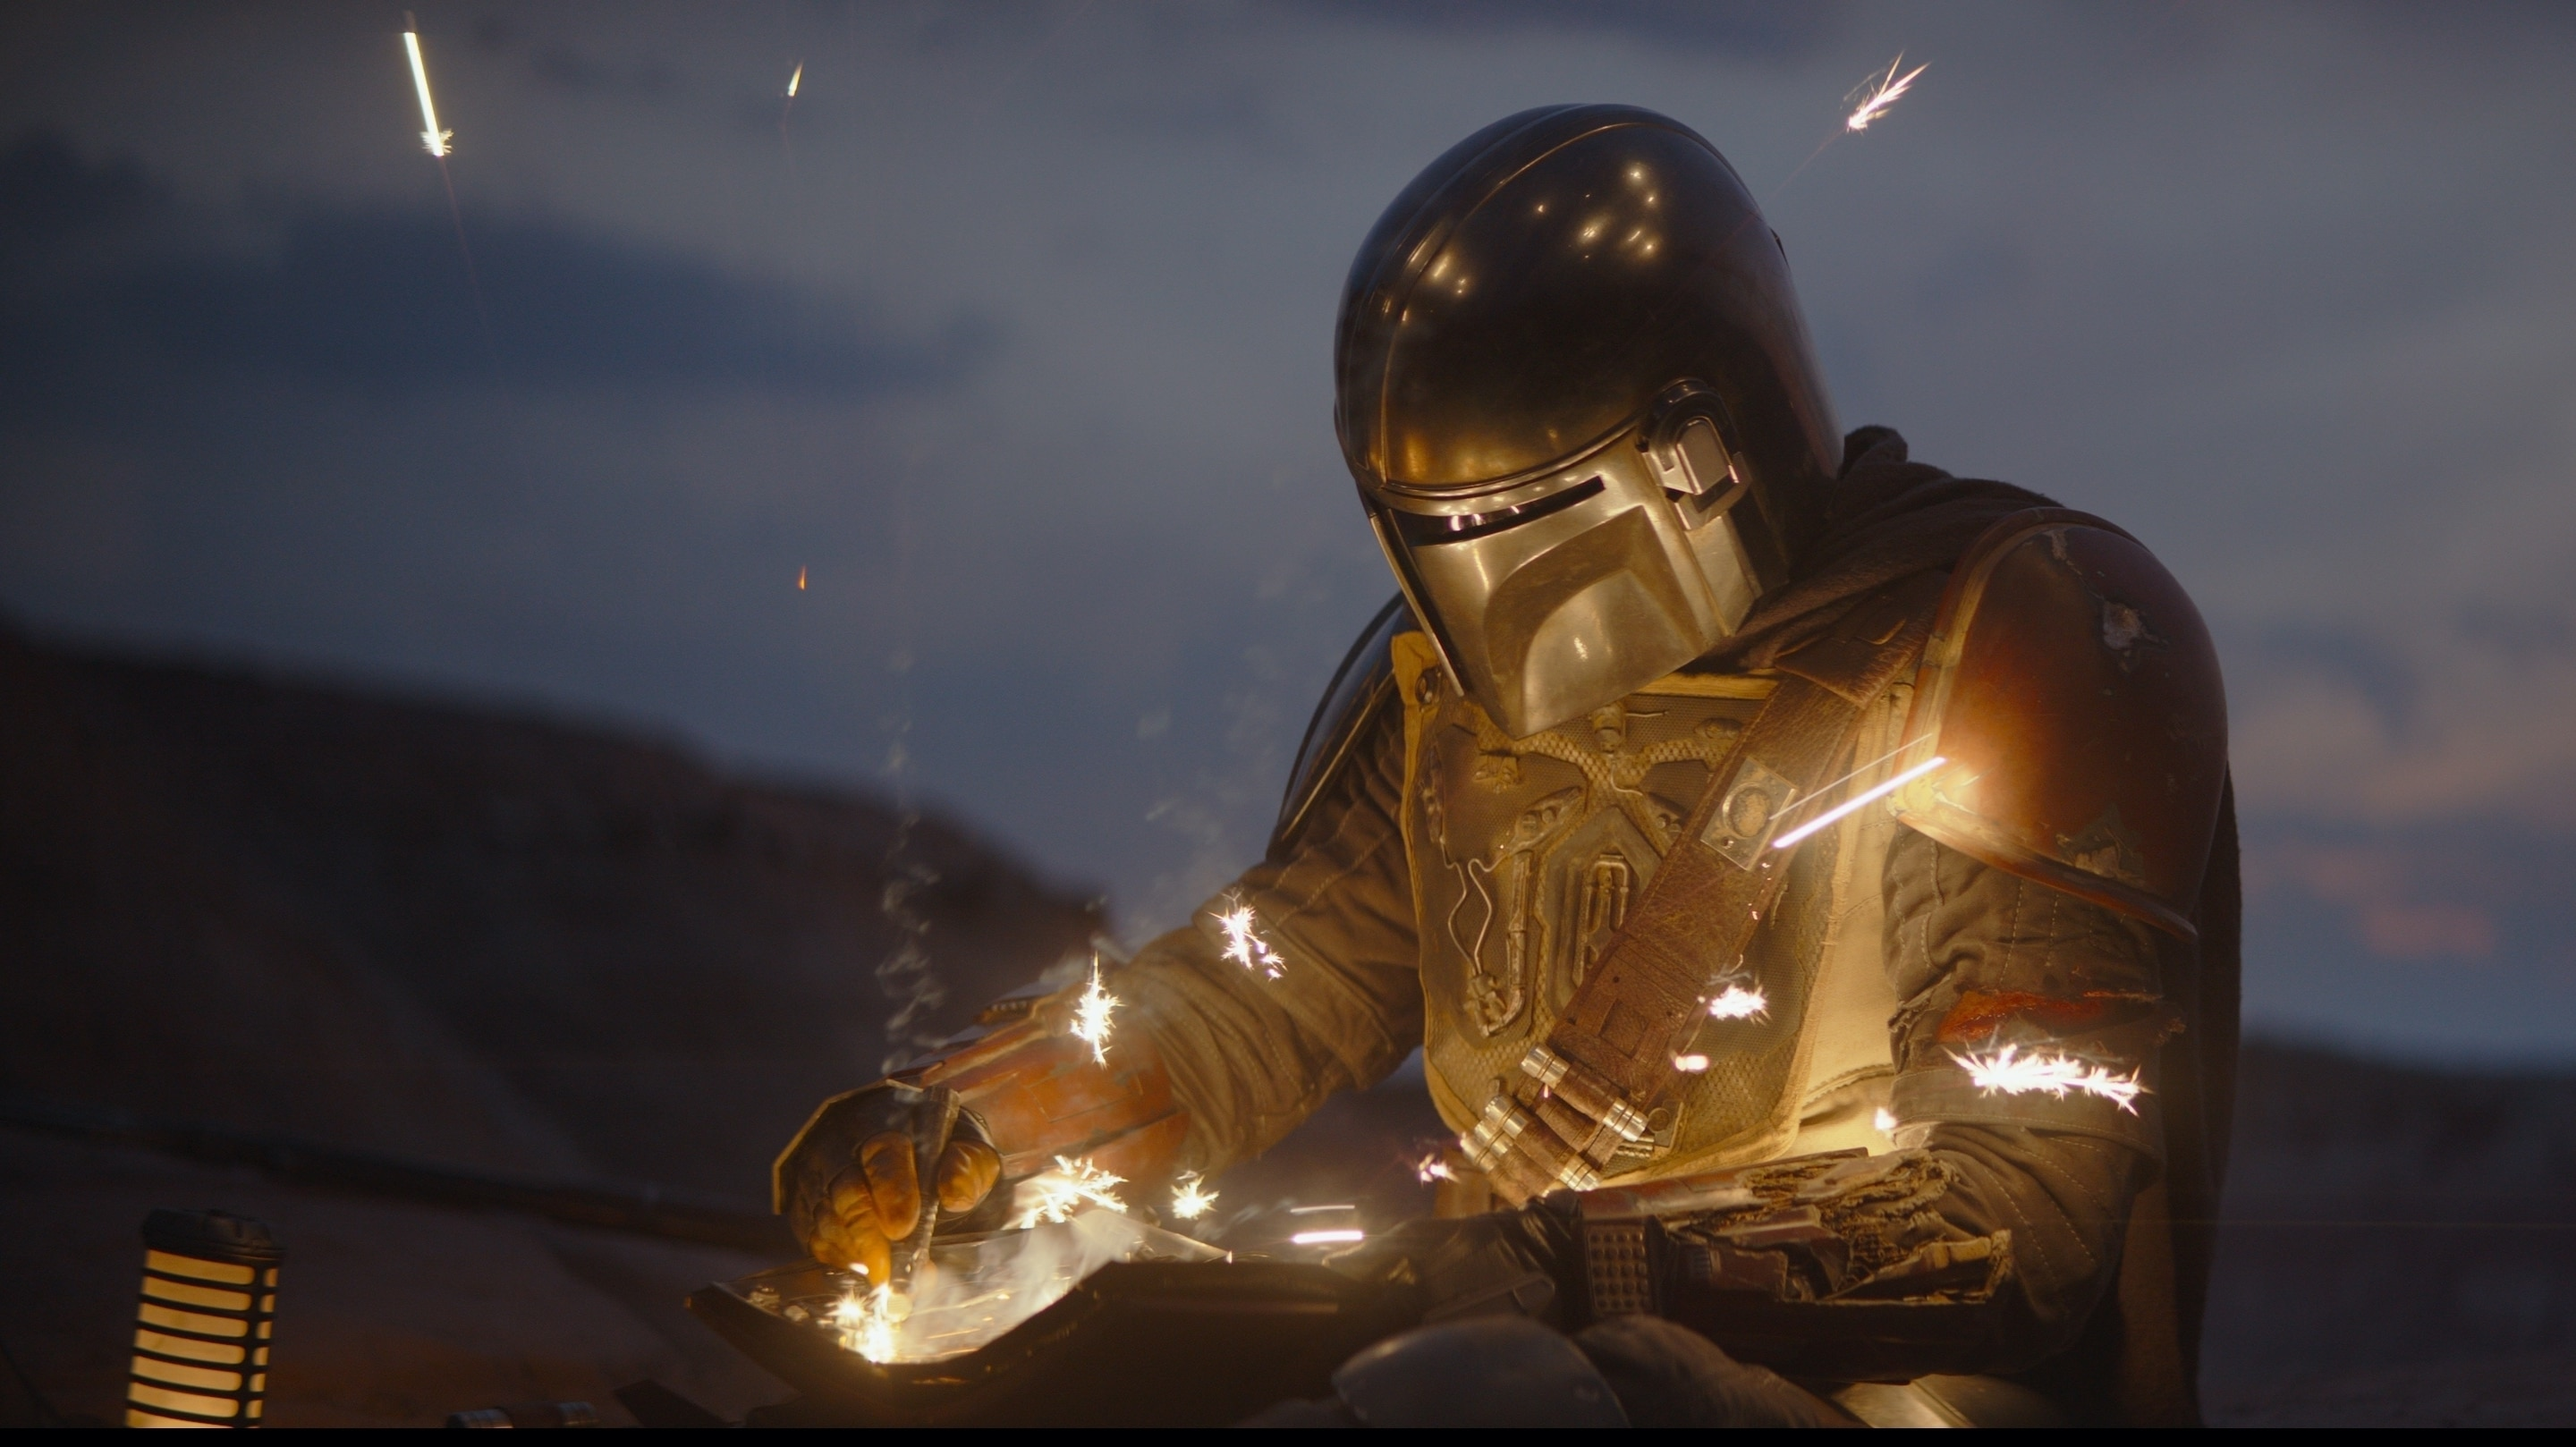 Chapter 2 Pedro Pascal is the Mandalorian in THE MANDALORIAN, exclusively on Disney+.